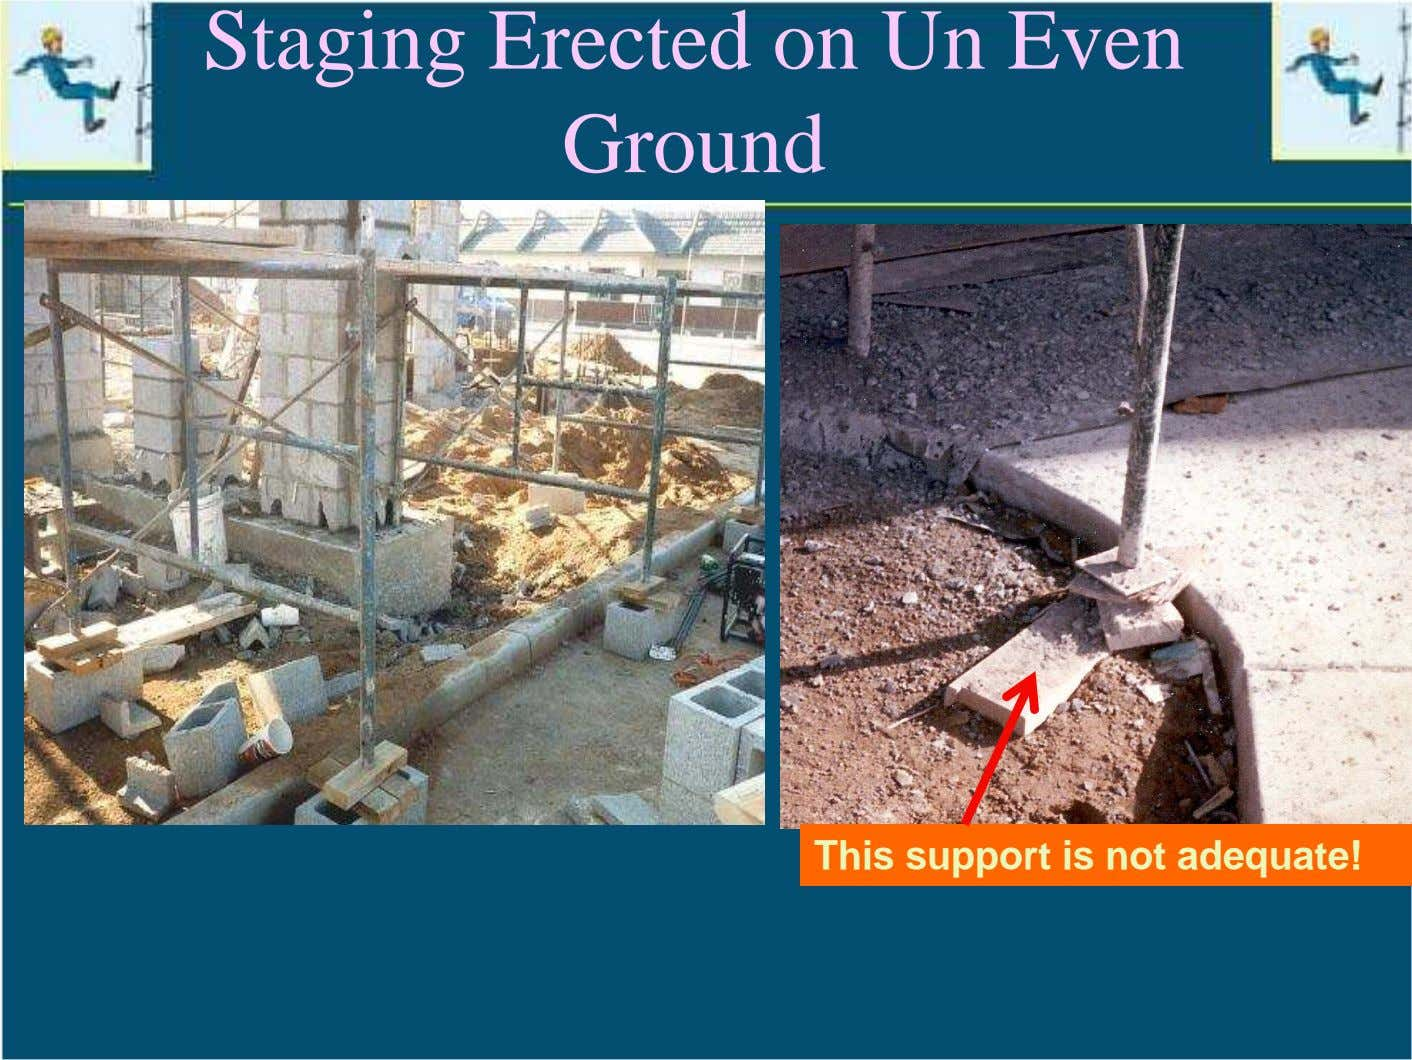 Staging Erected on Un Even Ground This support is not adequate!